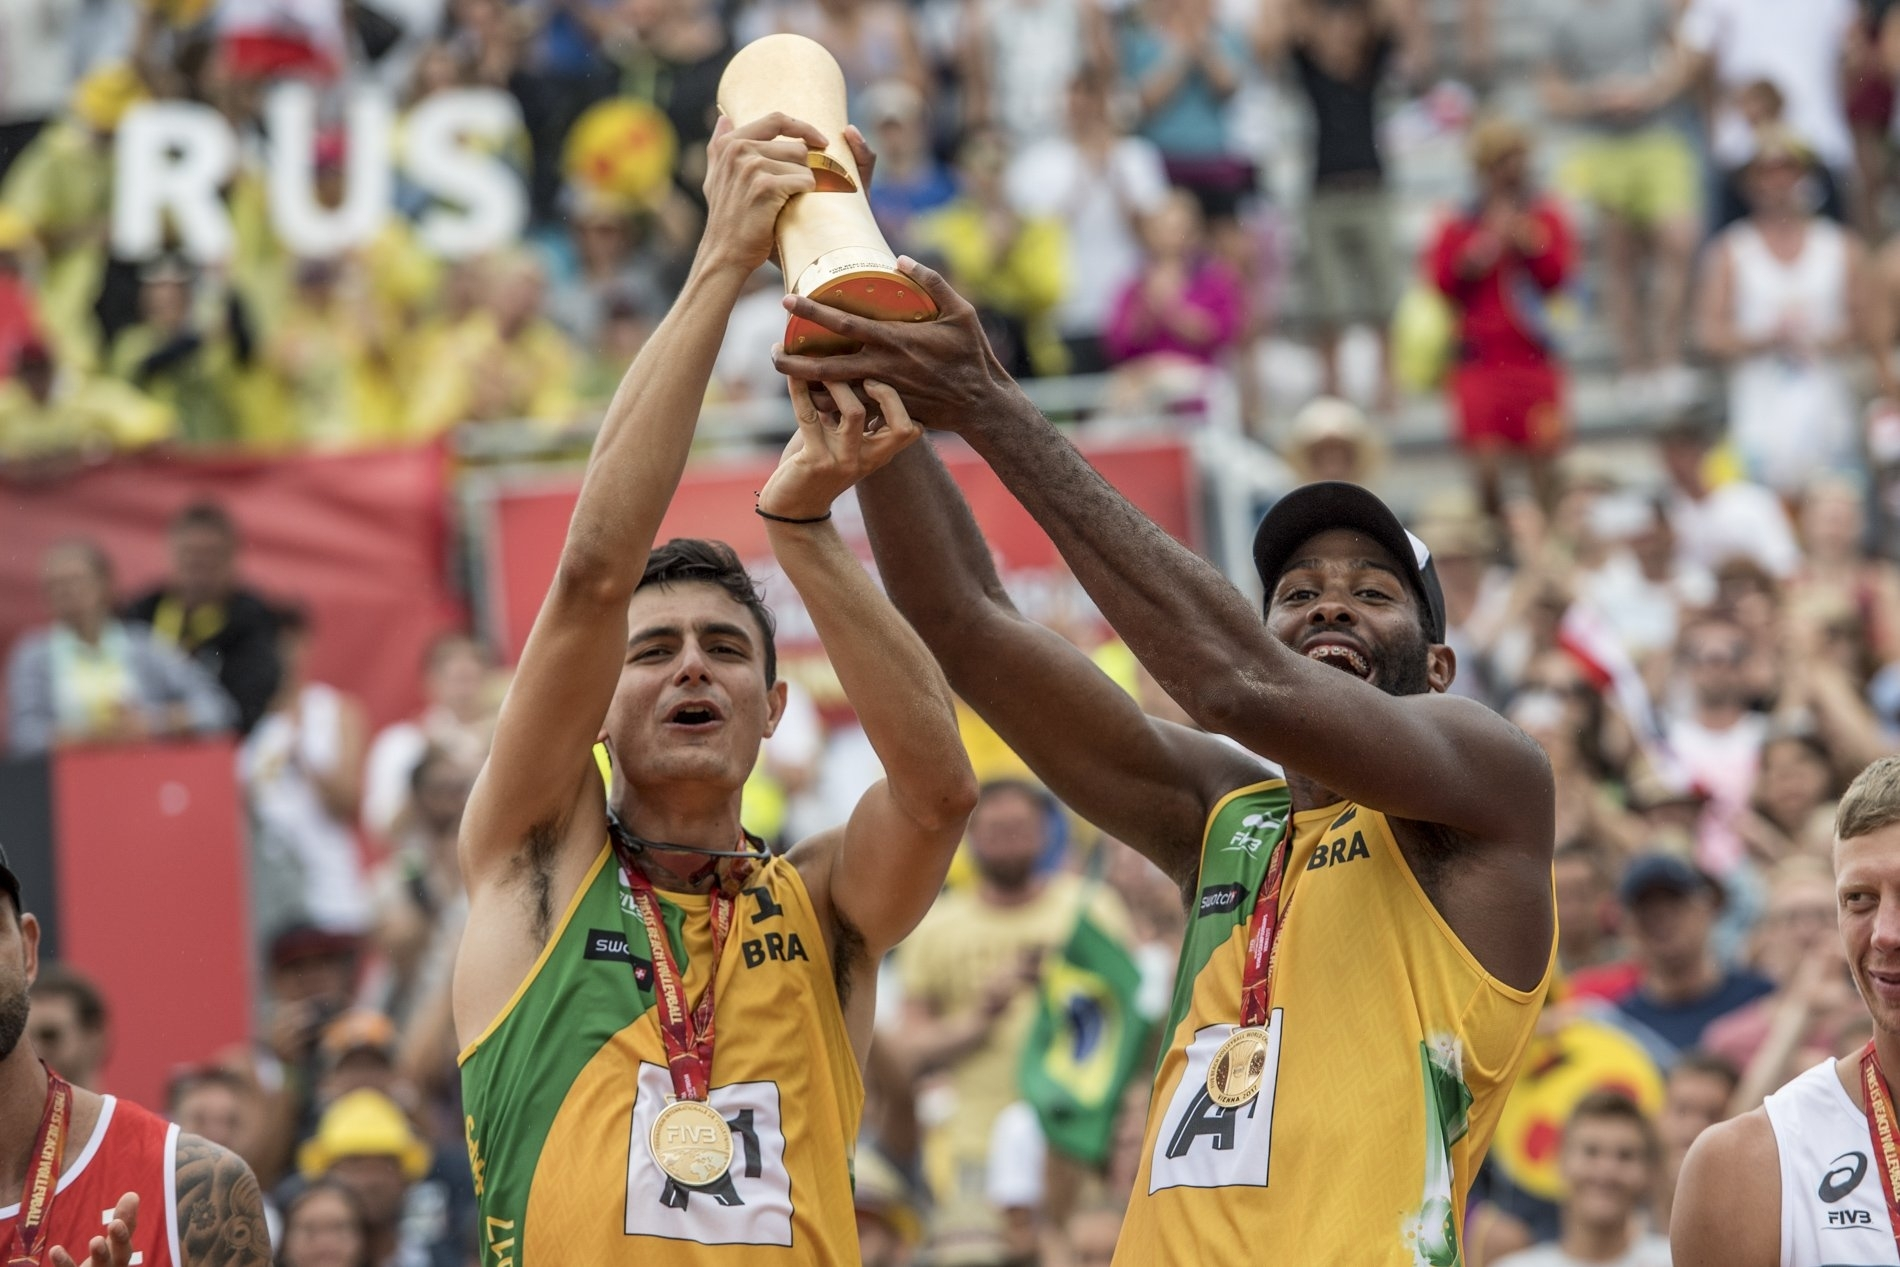 Evandro (right) and Andre lift the World Championship trophy in Vienna